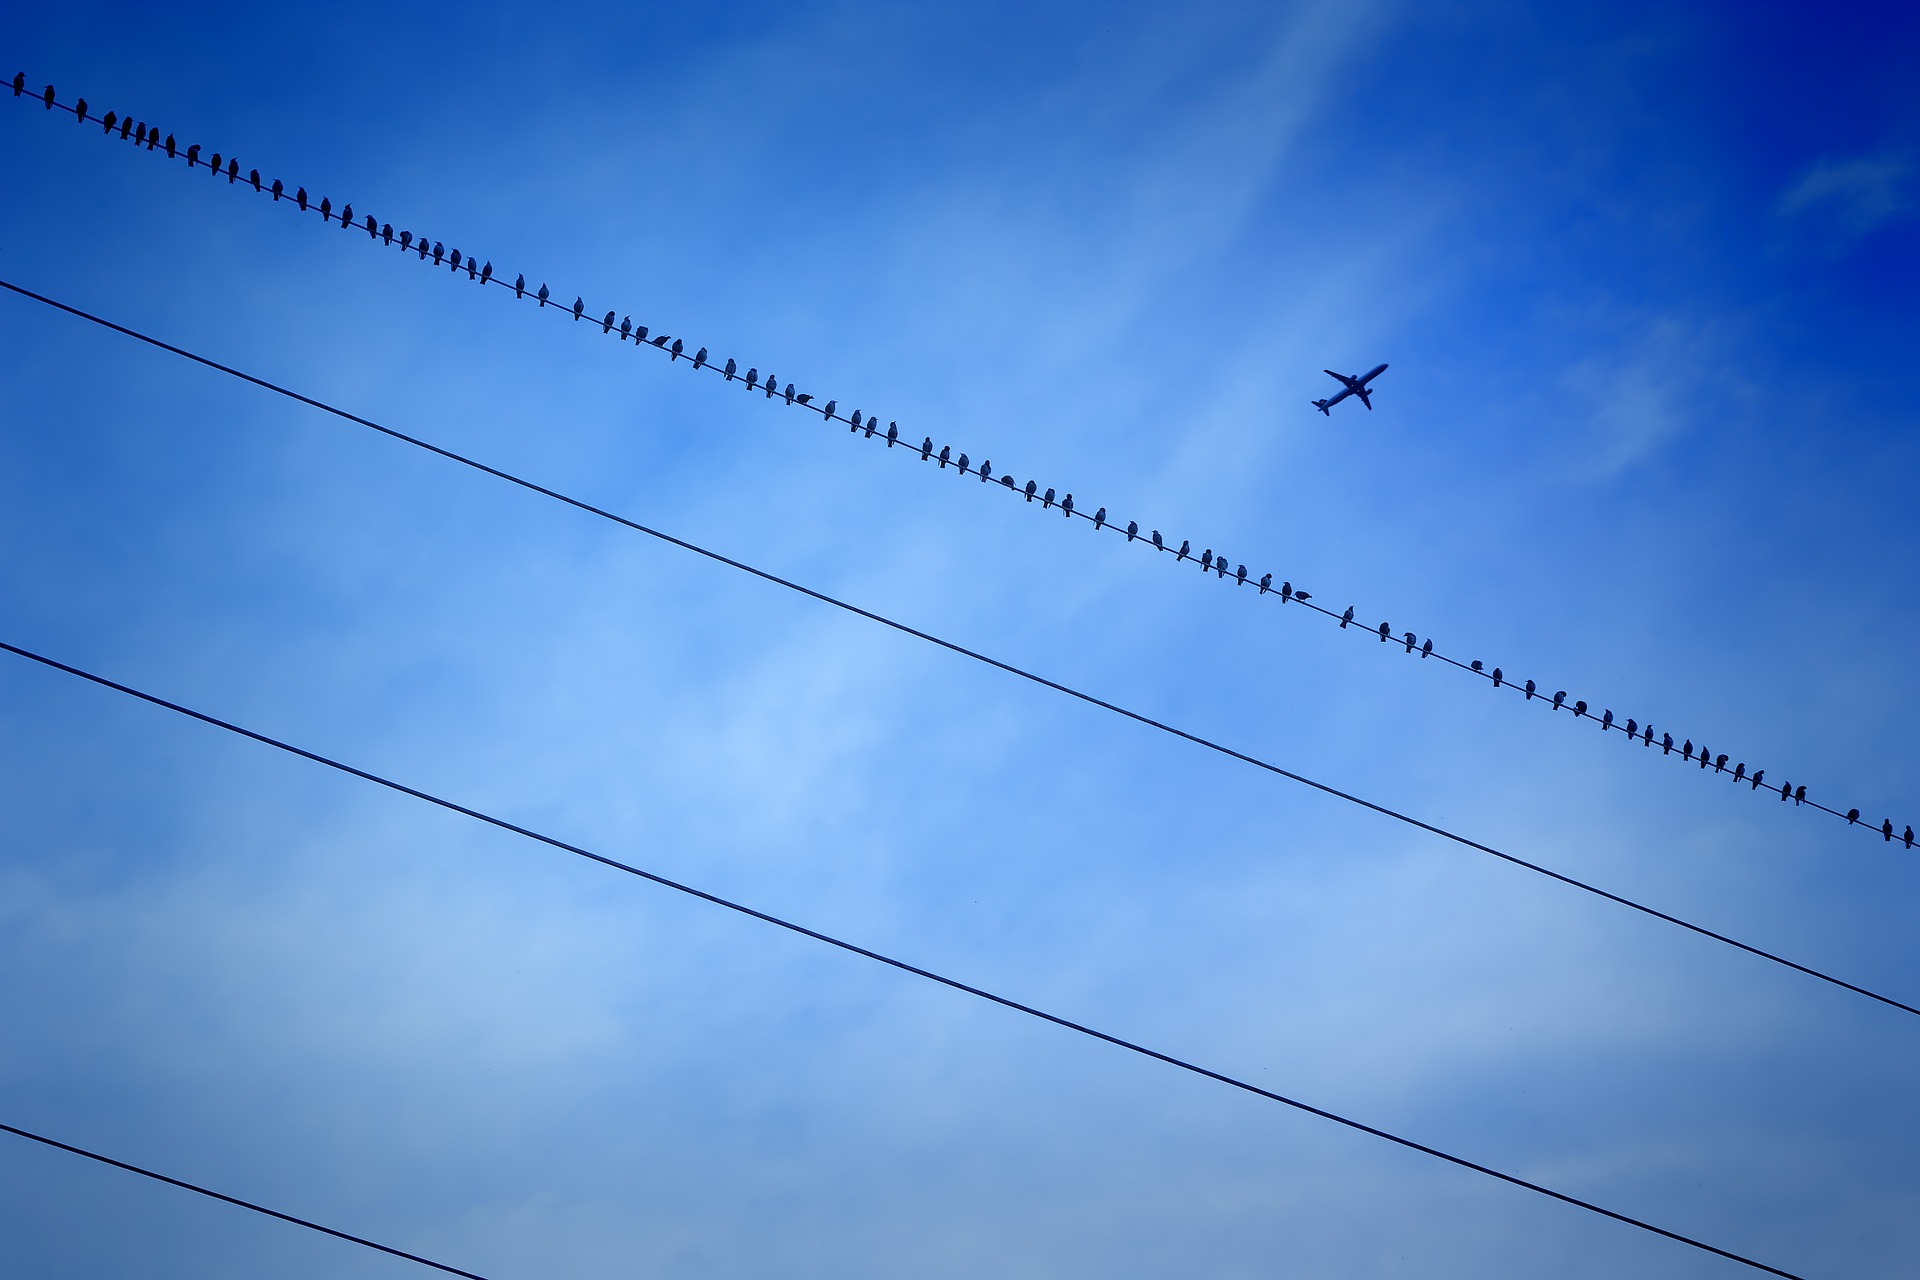 Are warnings on high bird activity meaningless without standards?